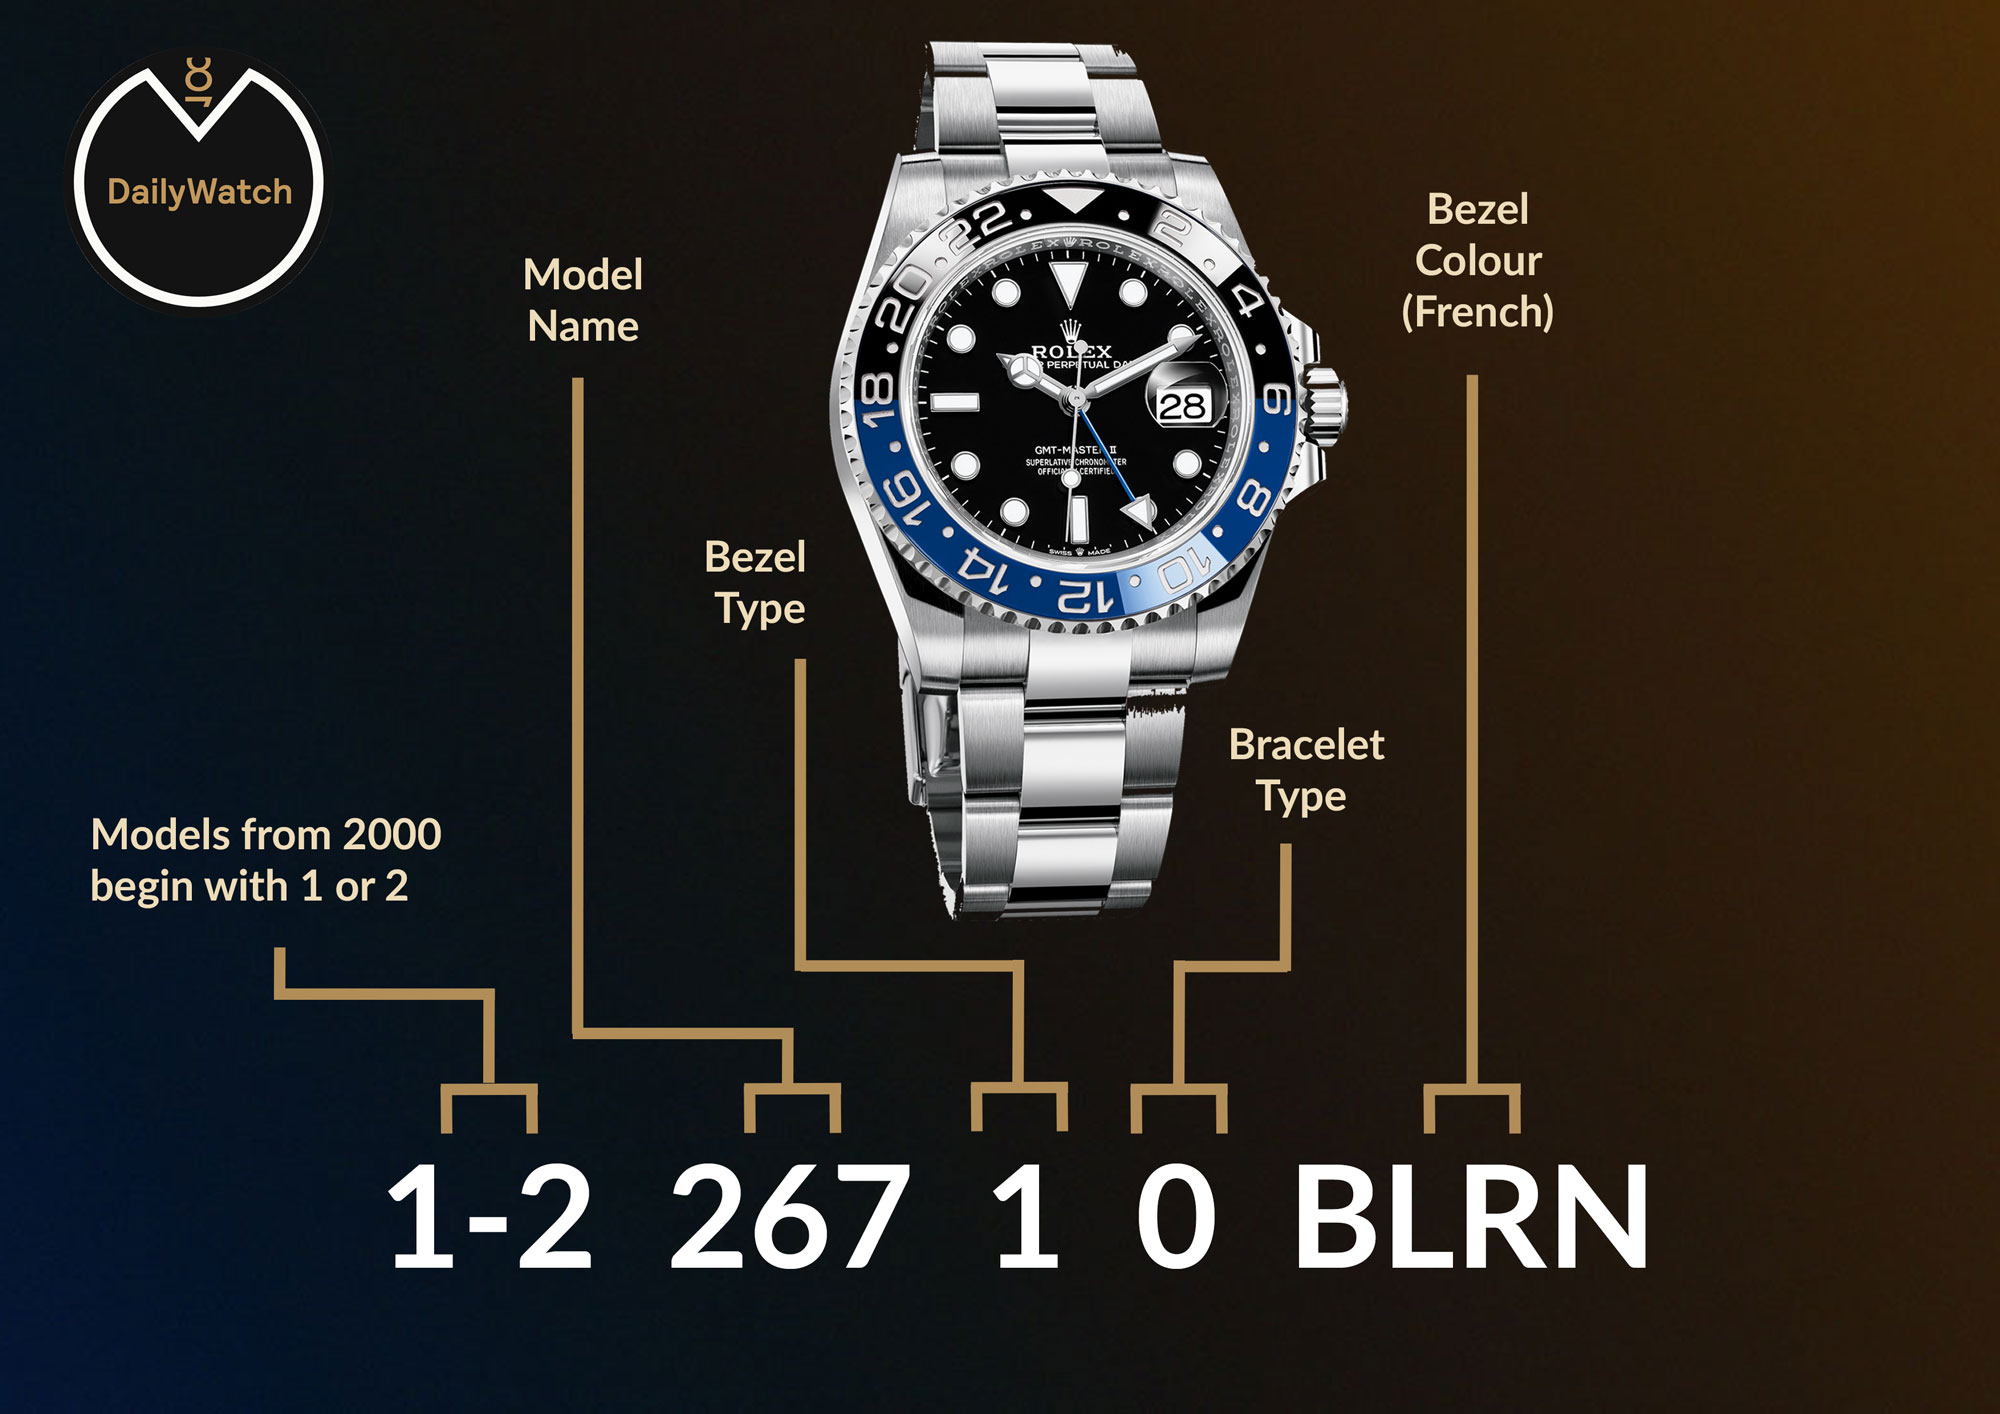 rolex reference numbers ,submariner, explorer, milgauss, datejust, air-king, gmt master, sky-dweller, day-date, oyster perpetual, yacht-master, daytona